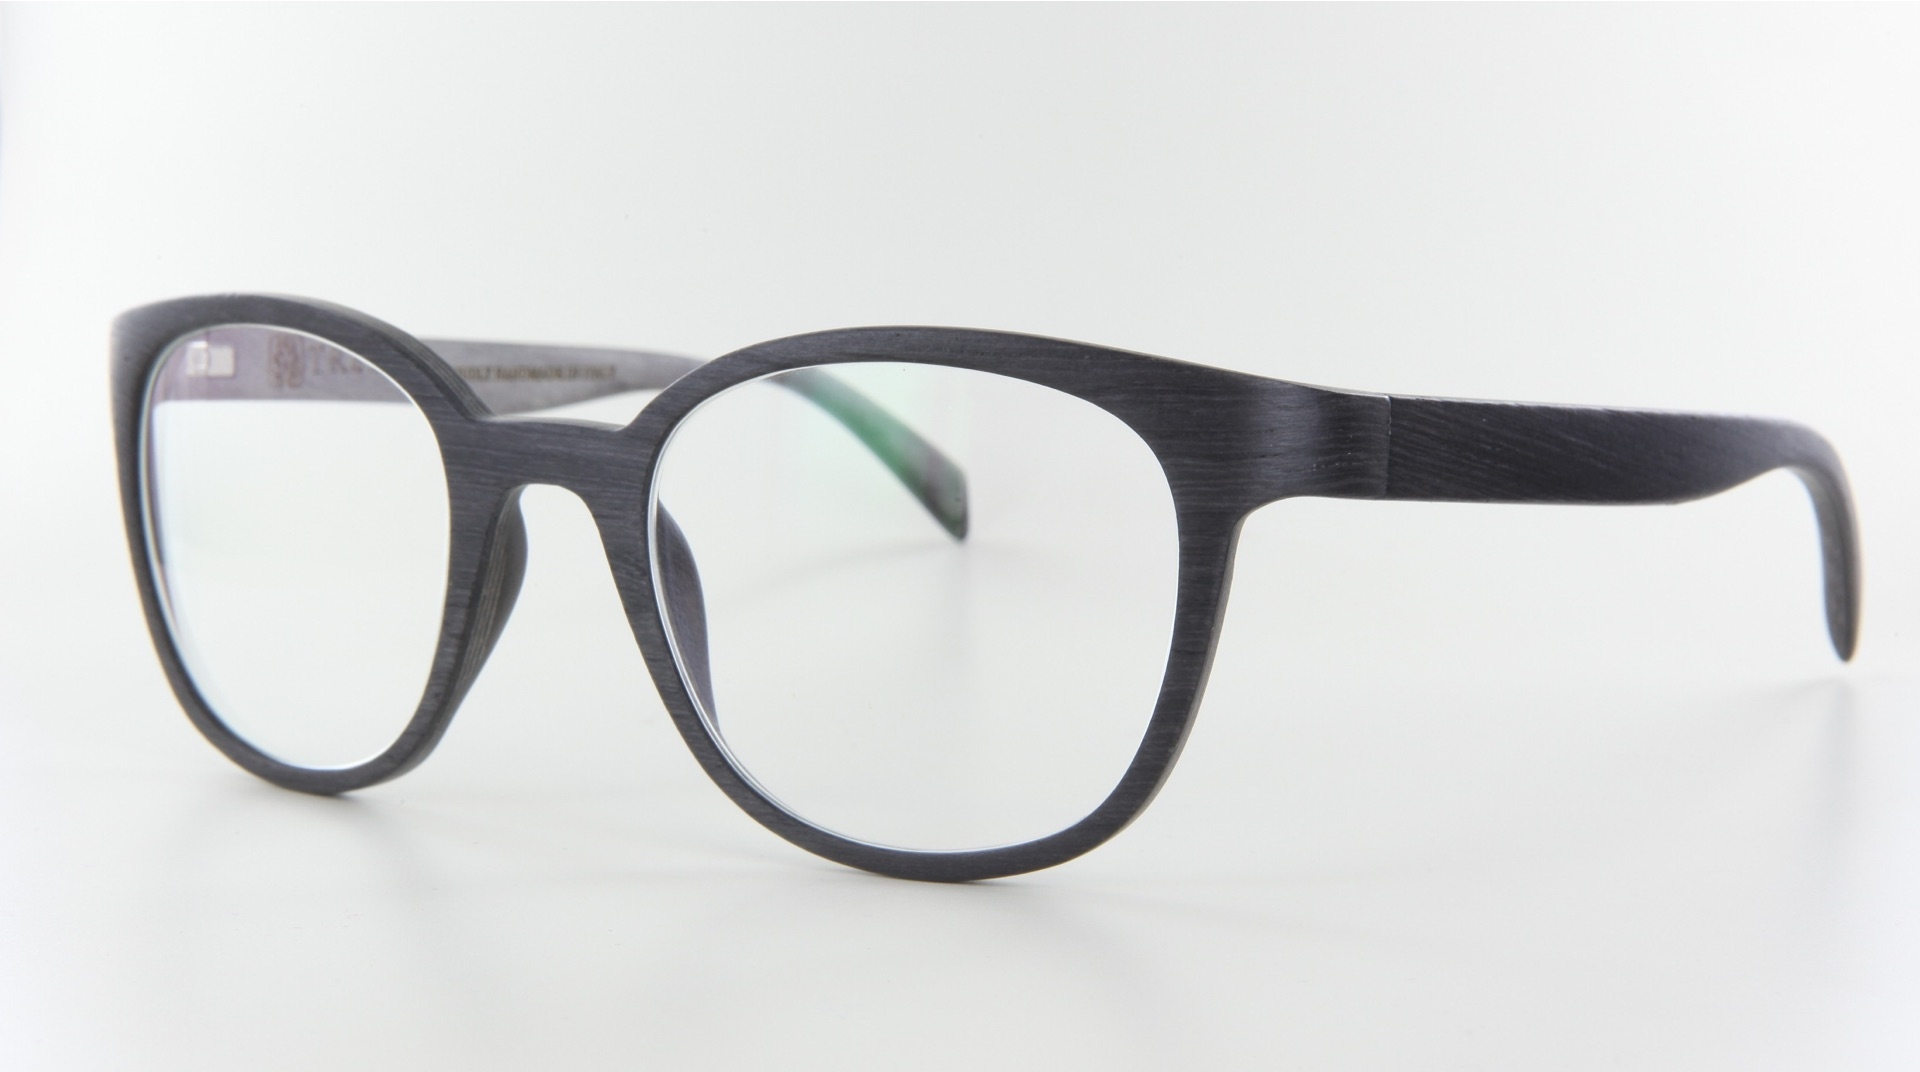 Tree Spectacles - ref: 74238